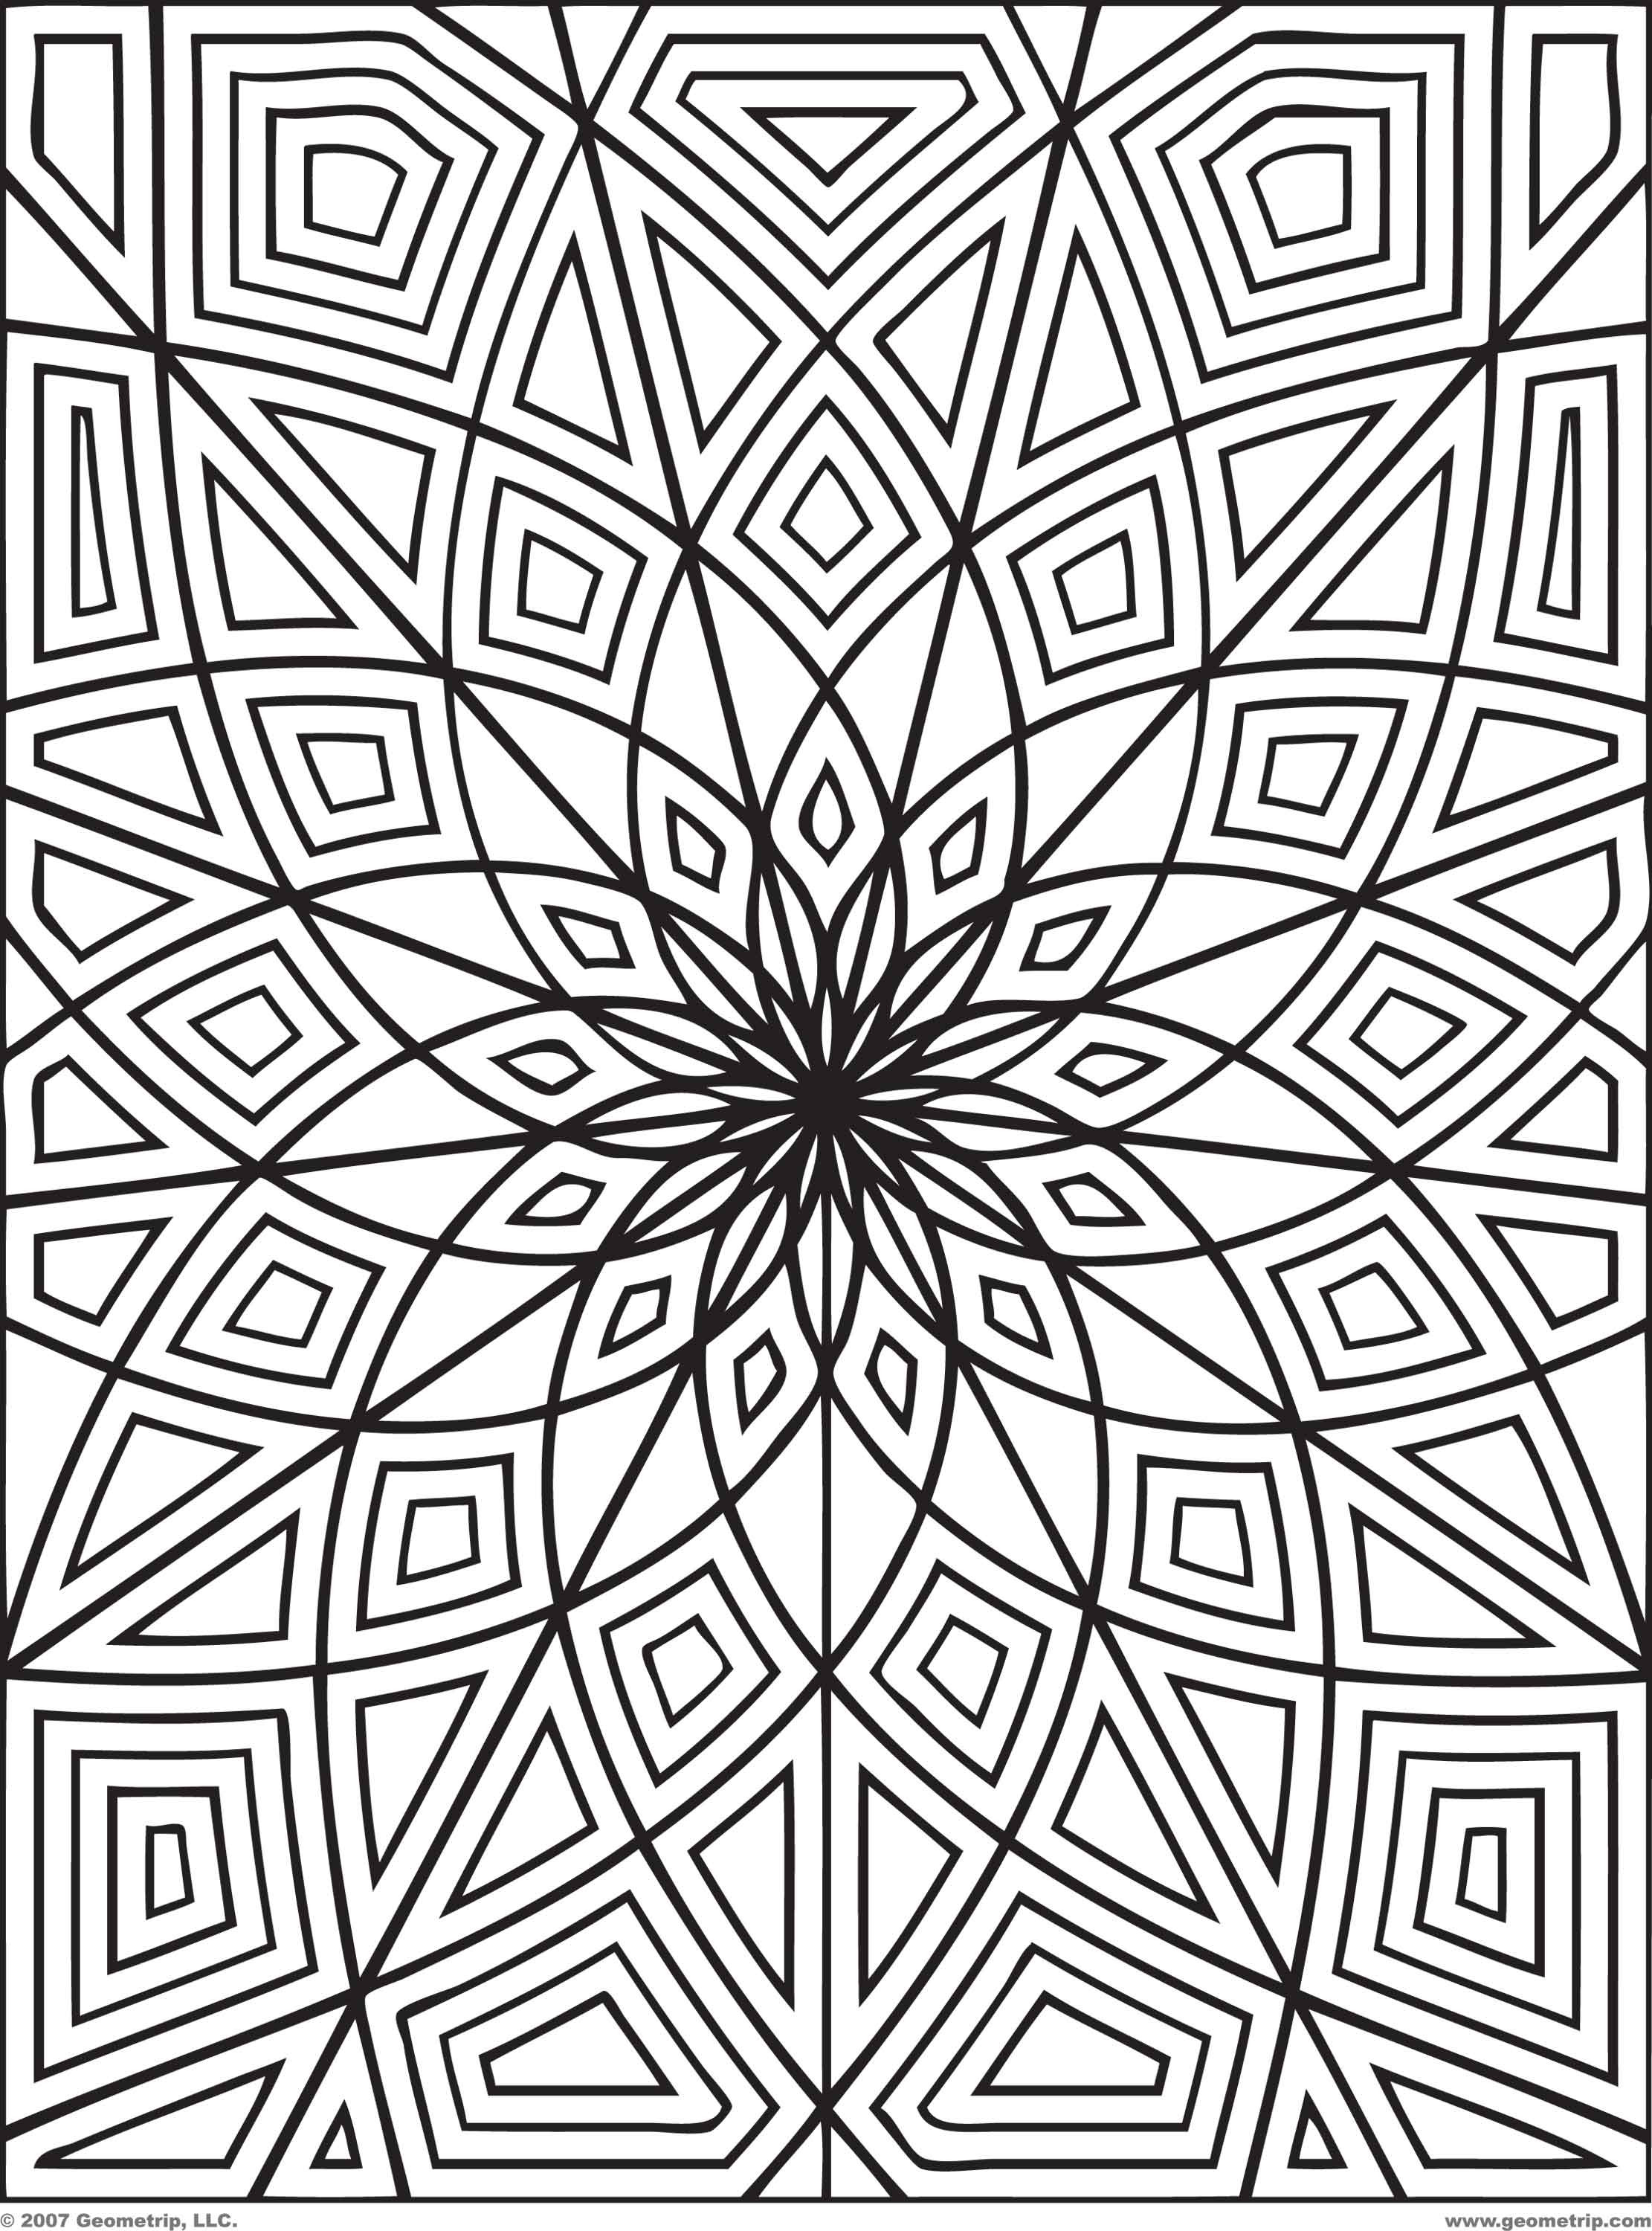 Printable Adult Coloring Books  Free Printable Adult Coloring Pages Awesome Image 14